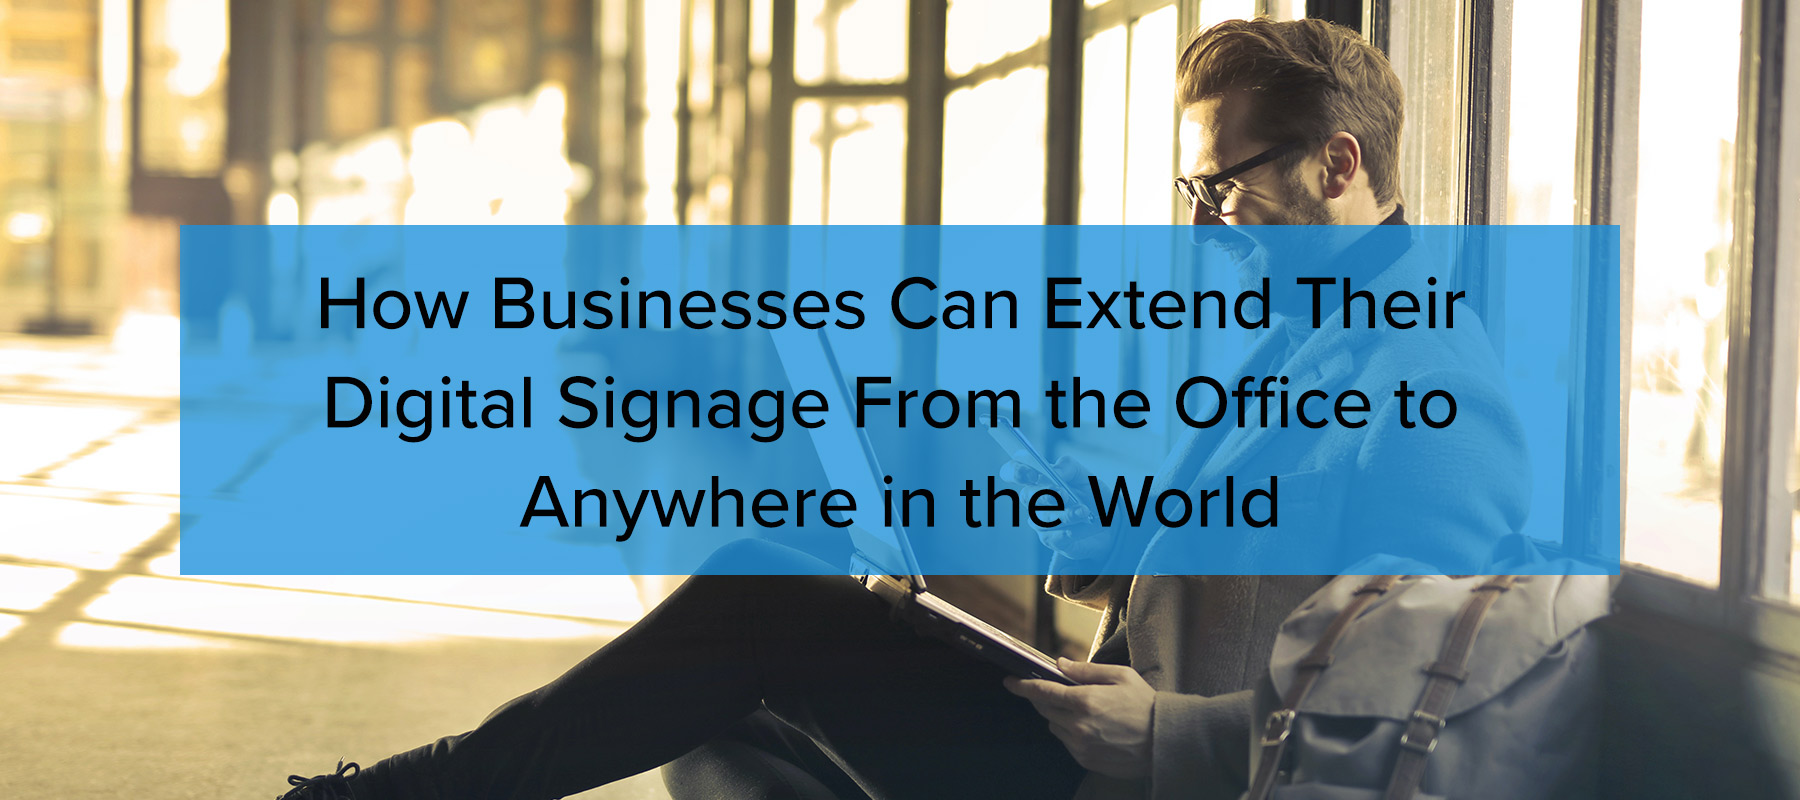 Digital Signage Anywhere in the World